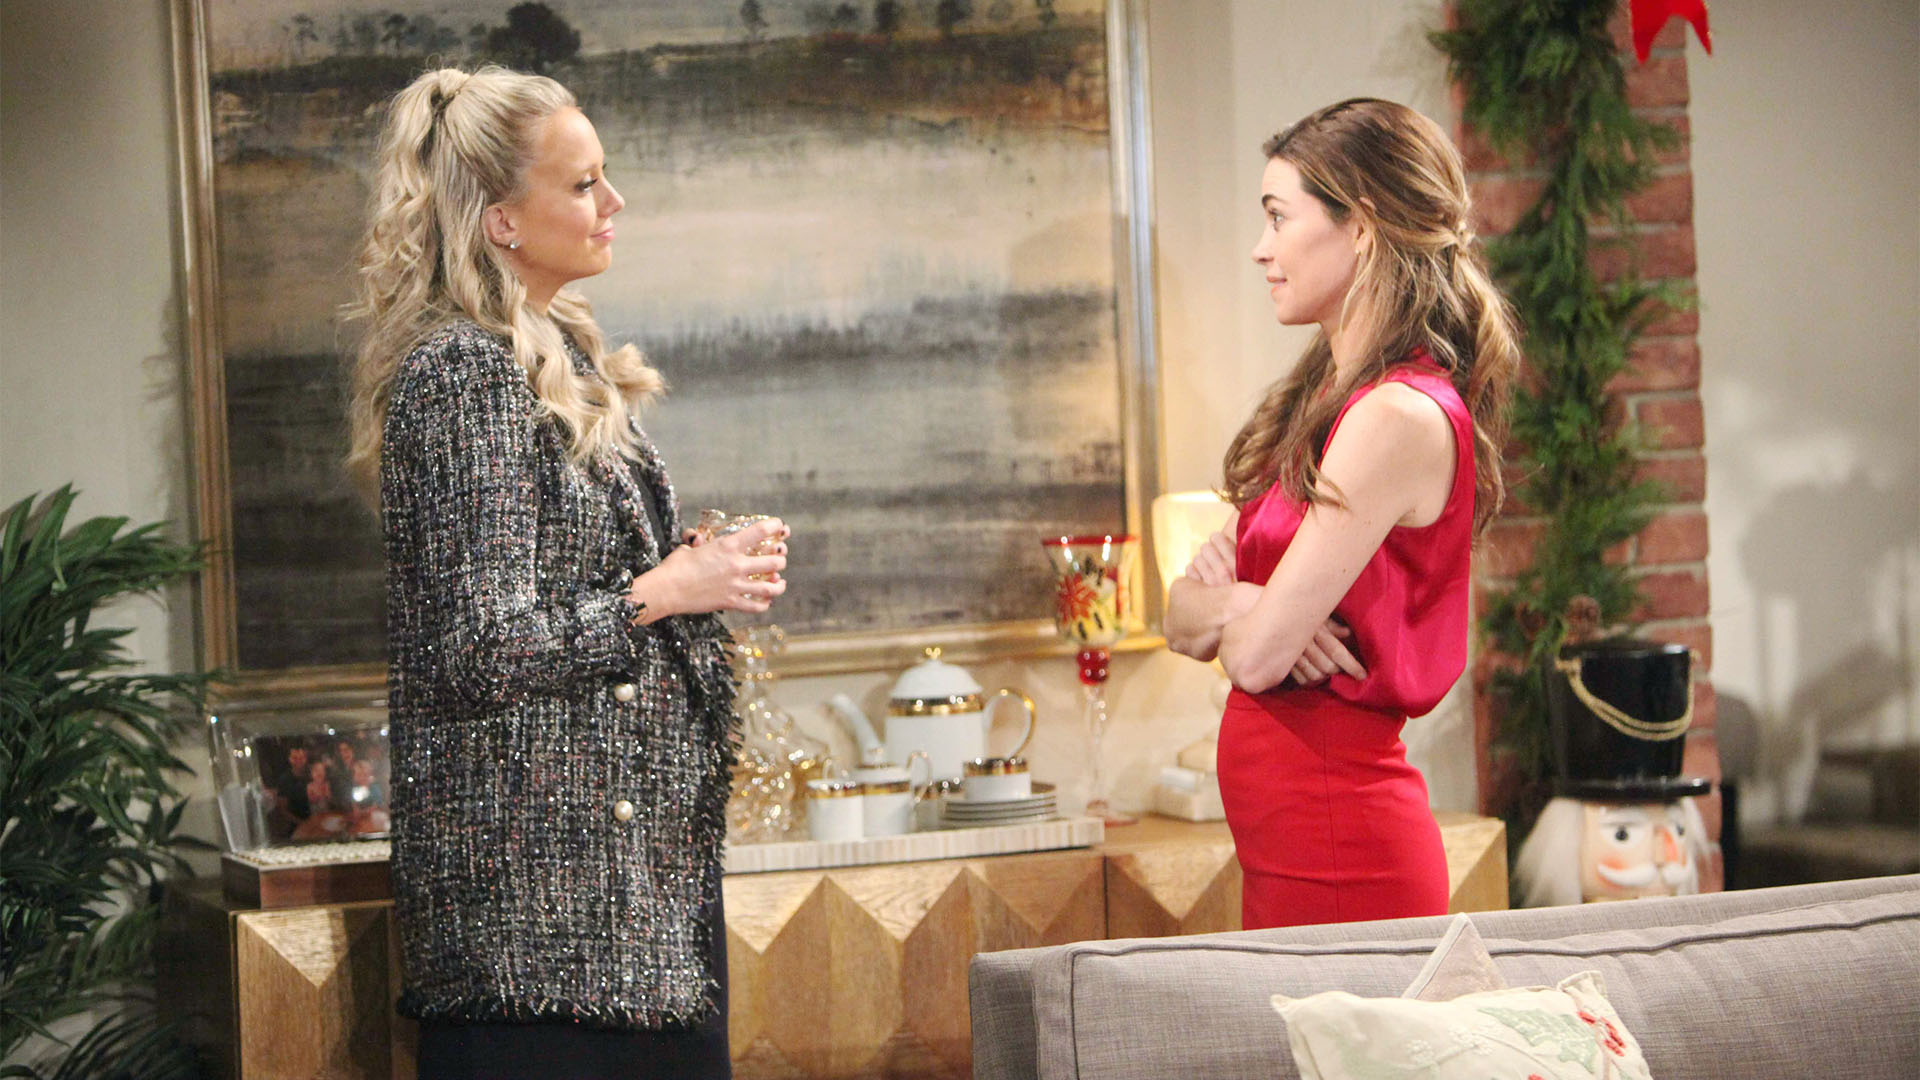 The feud between Abby and Victoria heats up!